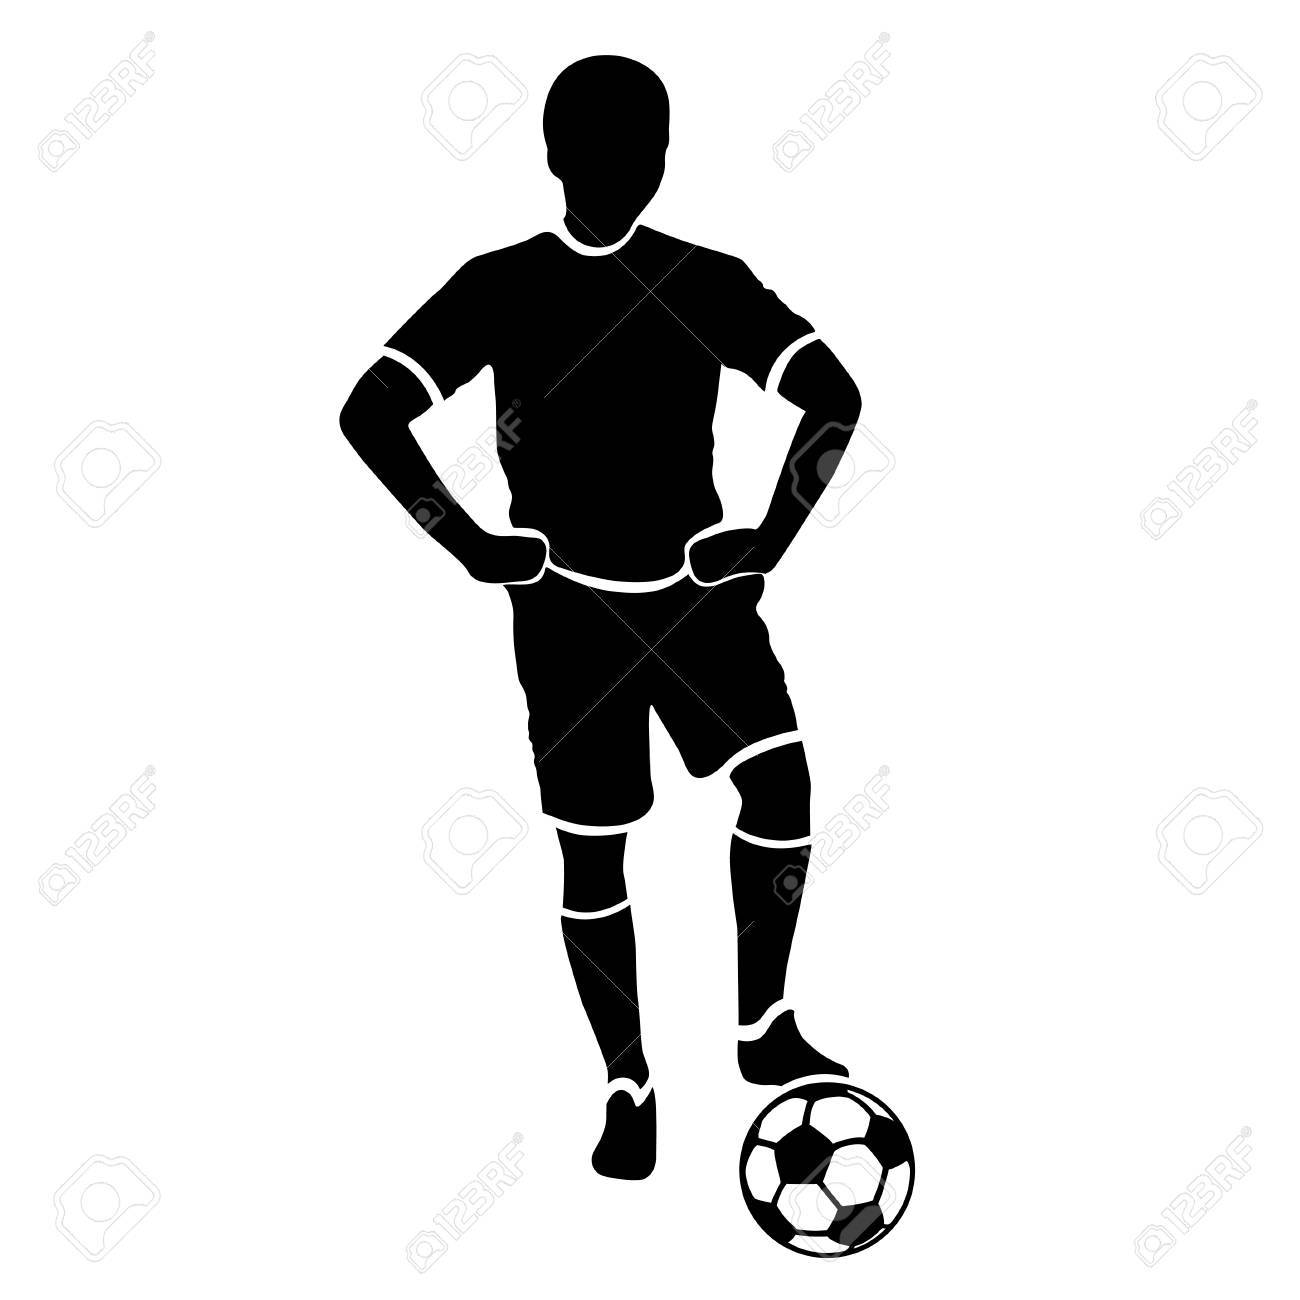 1300x1300 Magic Football Player Outline Very High Quality Detailed Soccer